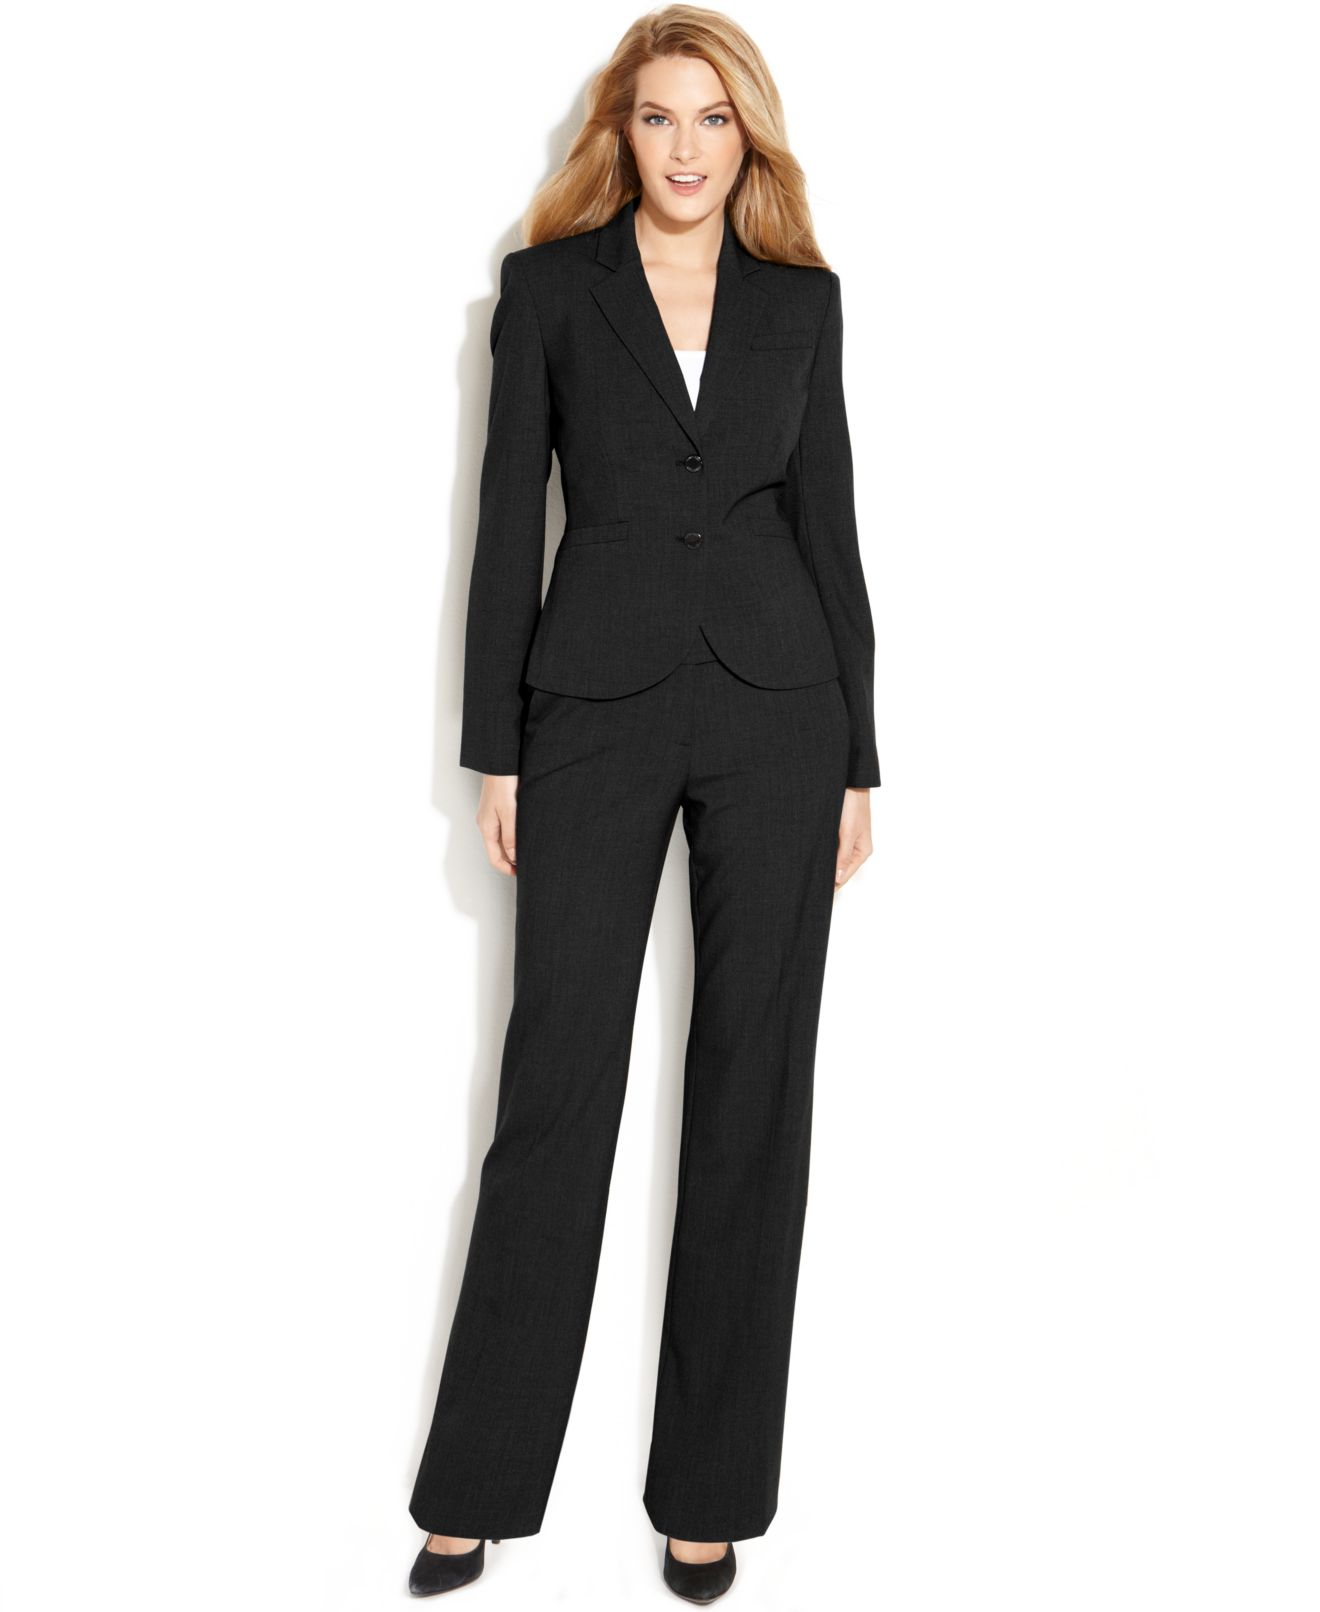 Calvin Klein Petite Stretch Blend Suit Separates Collection - Wear ...